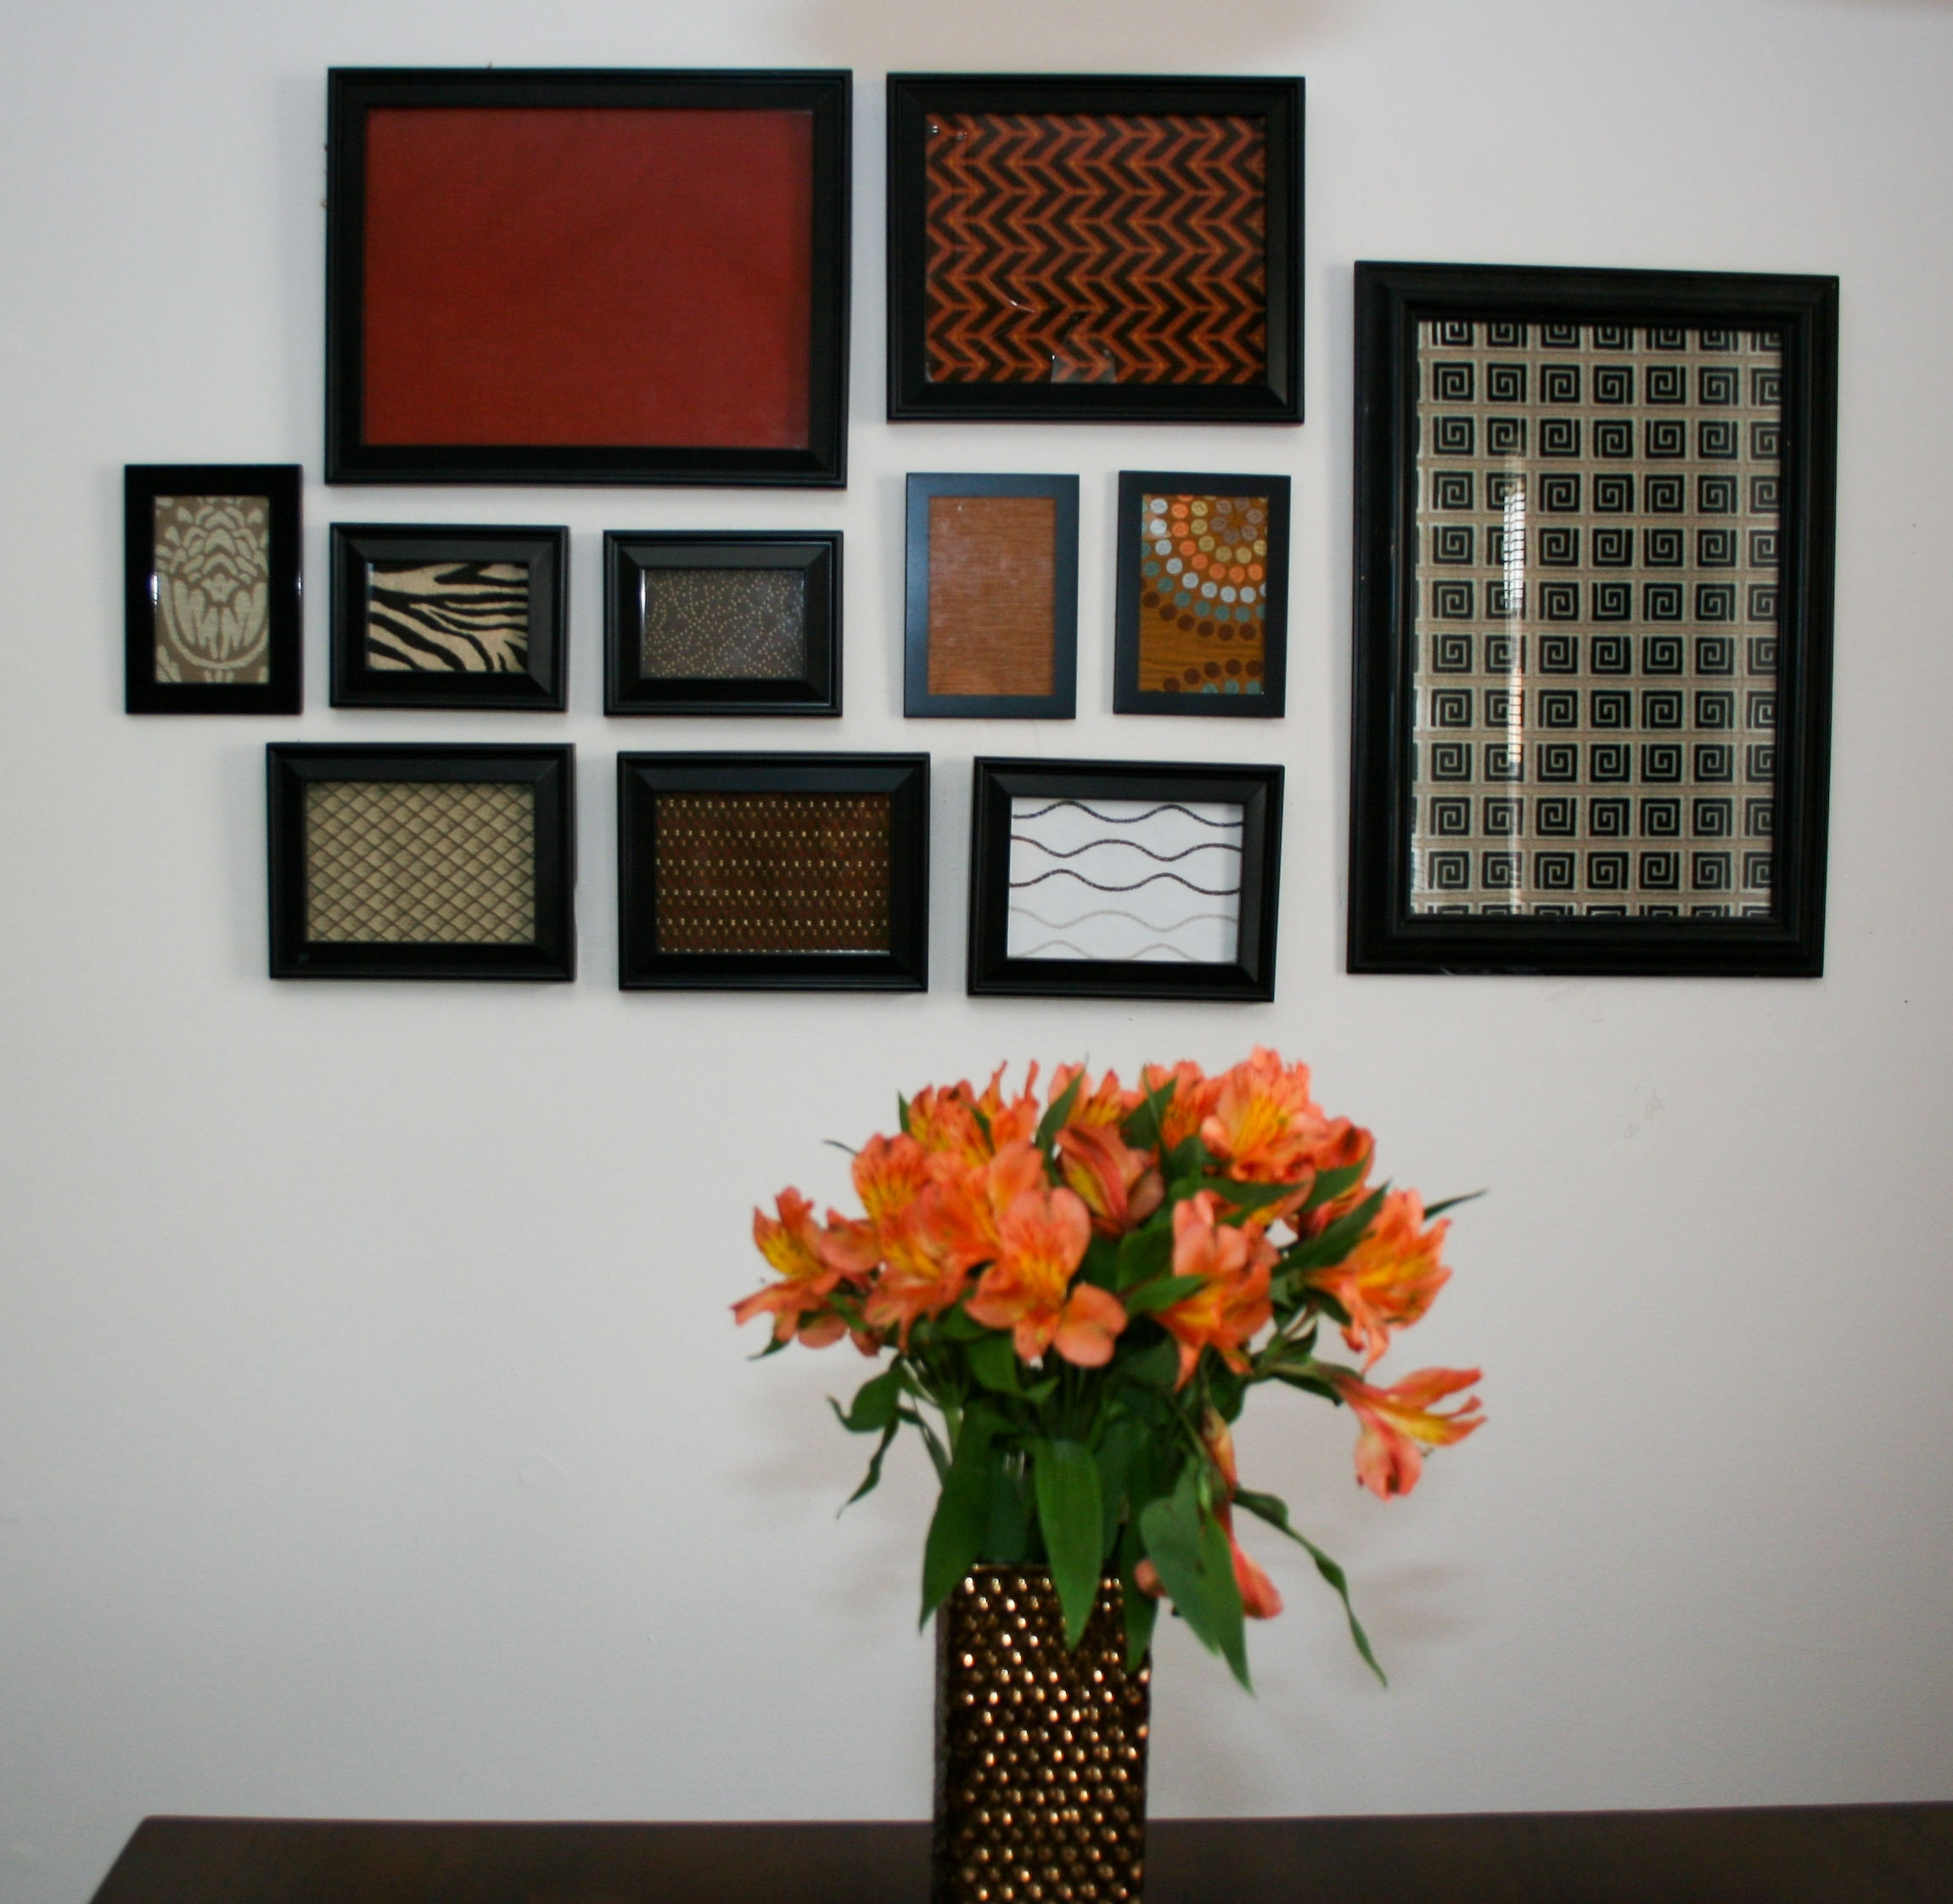 Wall Art Designs: Framed Fabric Wall Art Making Panels Blue Regarding Most Current Personalized Fabric Wall Art (View 12 of 15)